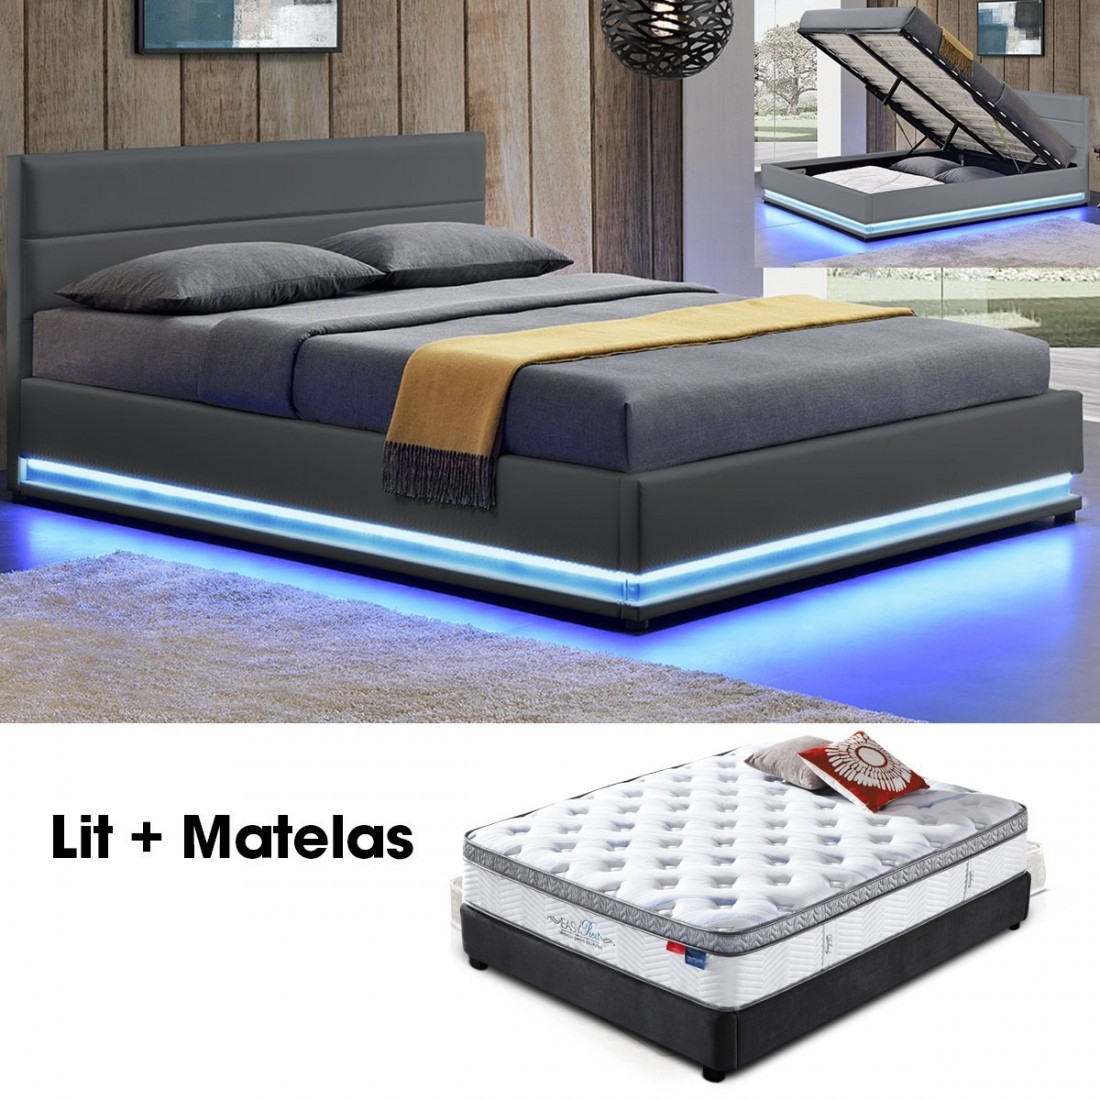 matelas plus sommier. Black Bedroom Furniture Sets. Home Design Ideas